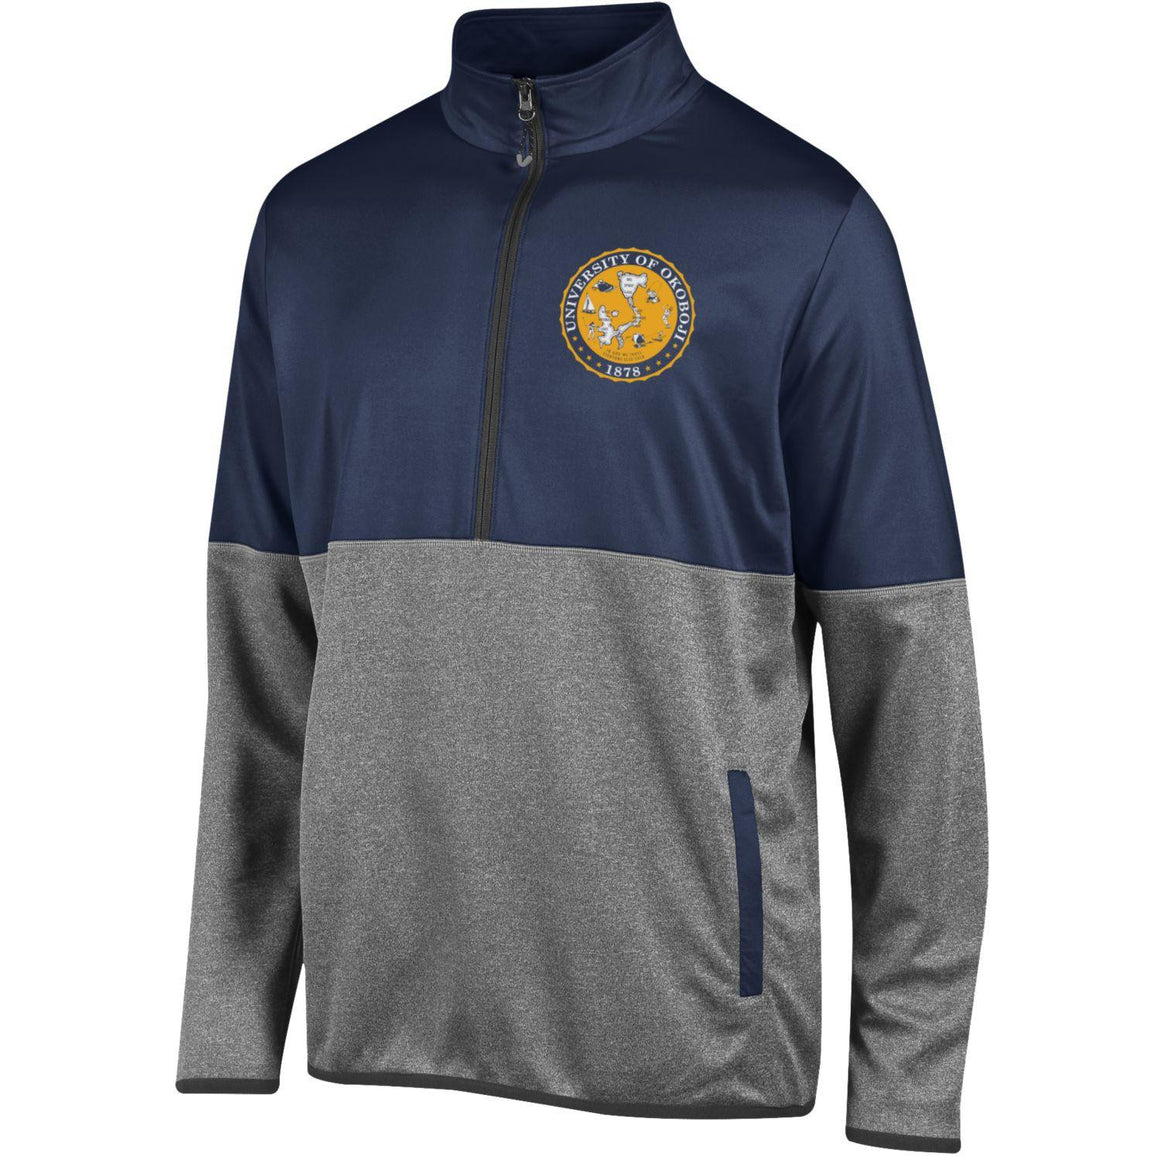 U of O Crest Convergence 1/4 Zip Fleece